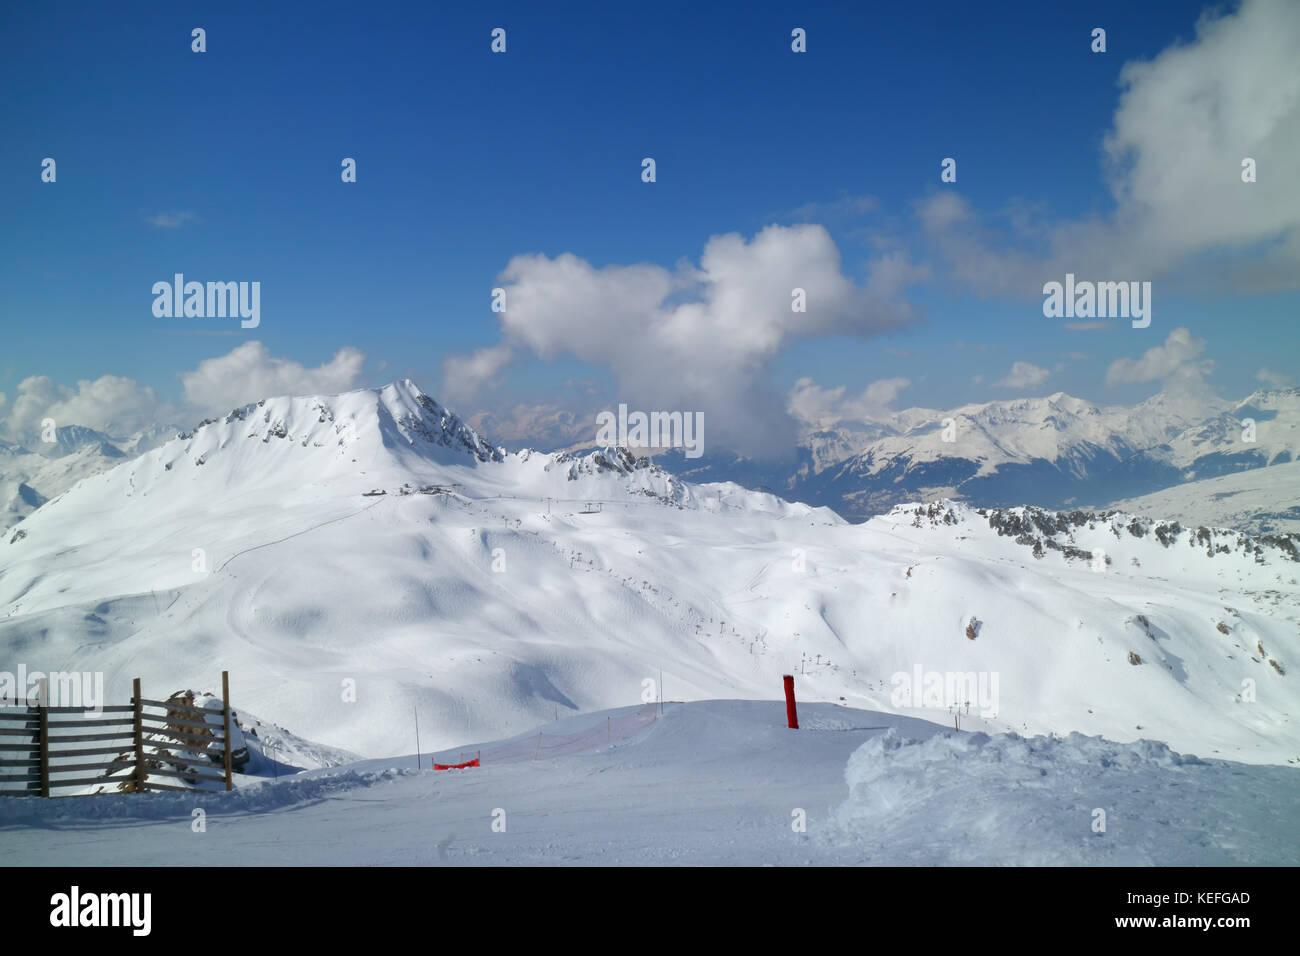 Alpine rugged snowy peaks panorama with skiing slopes in Les Arcs resort, Alps, France - Stock Image